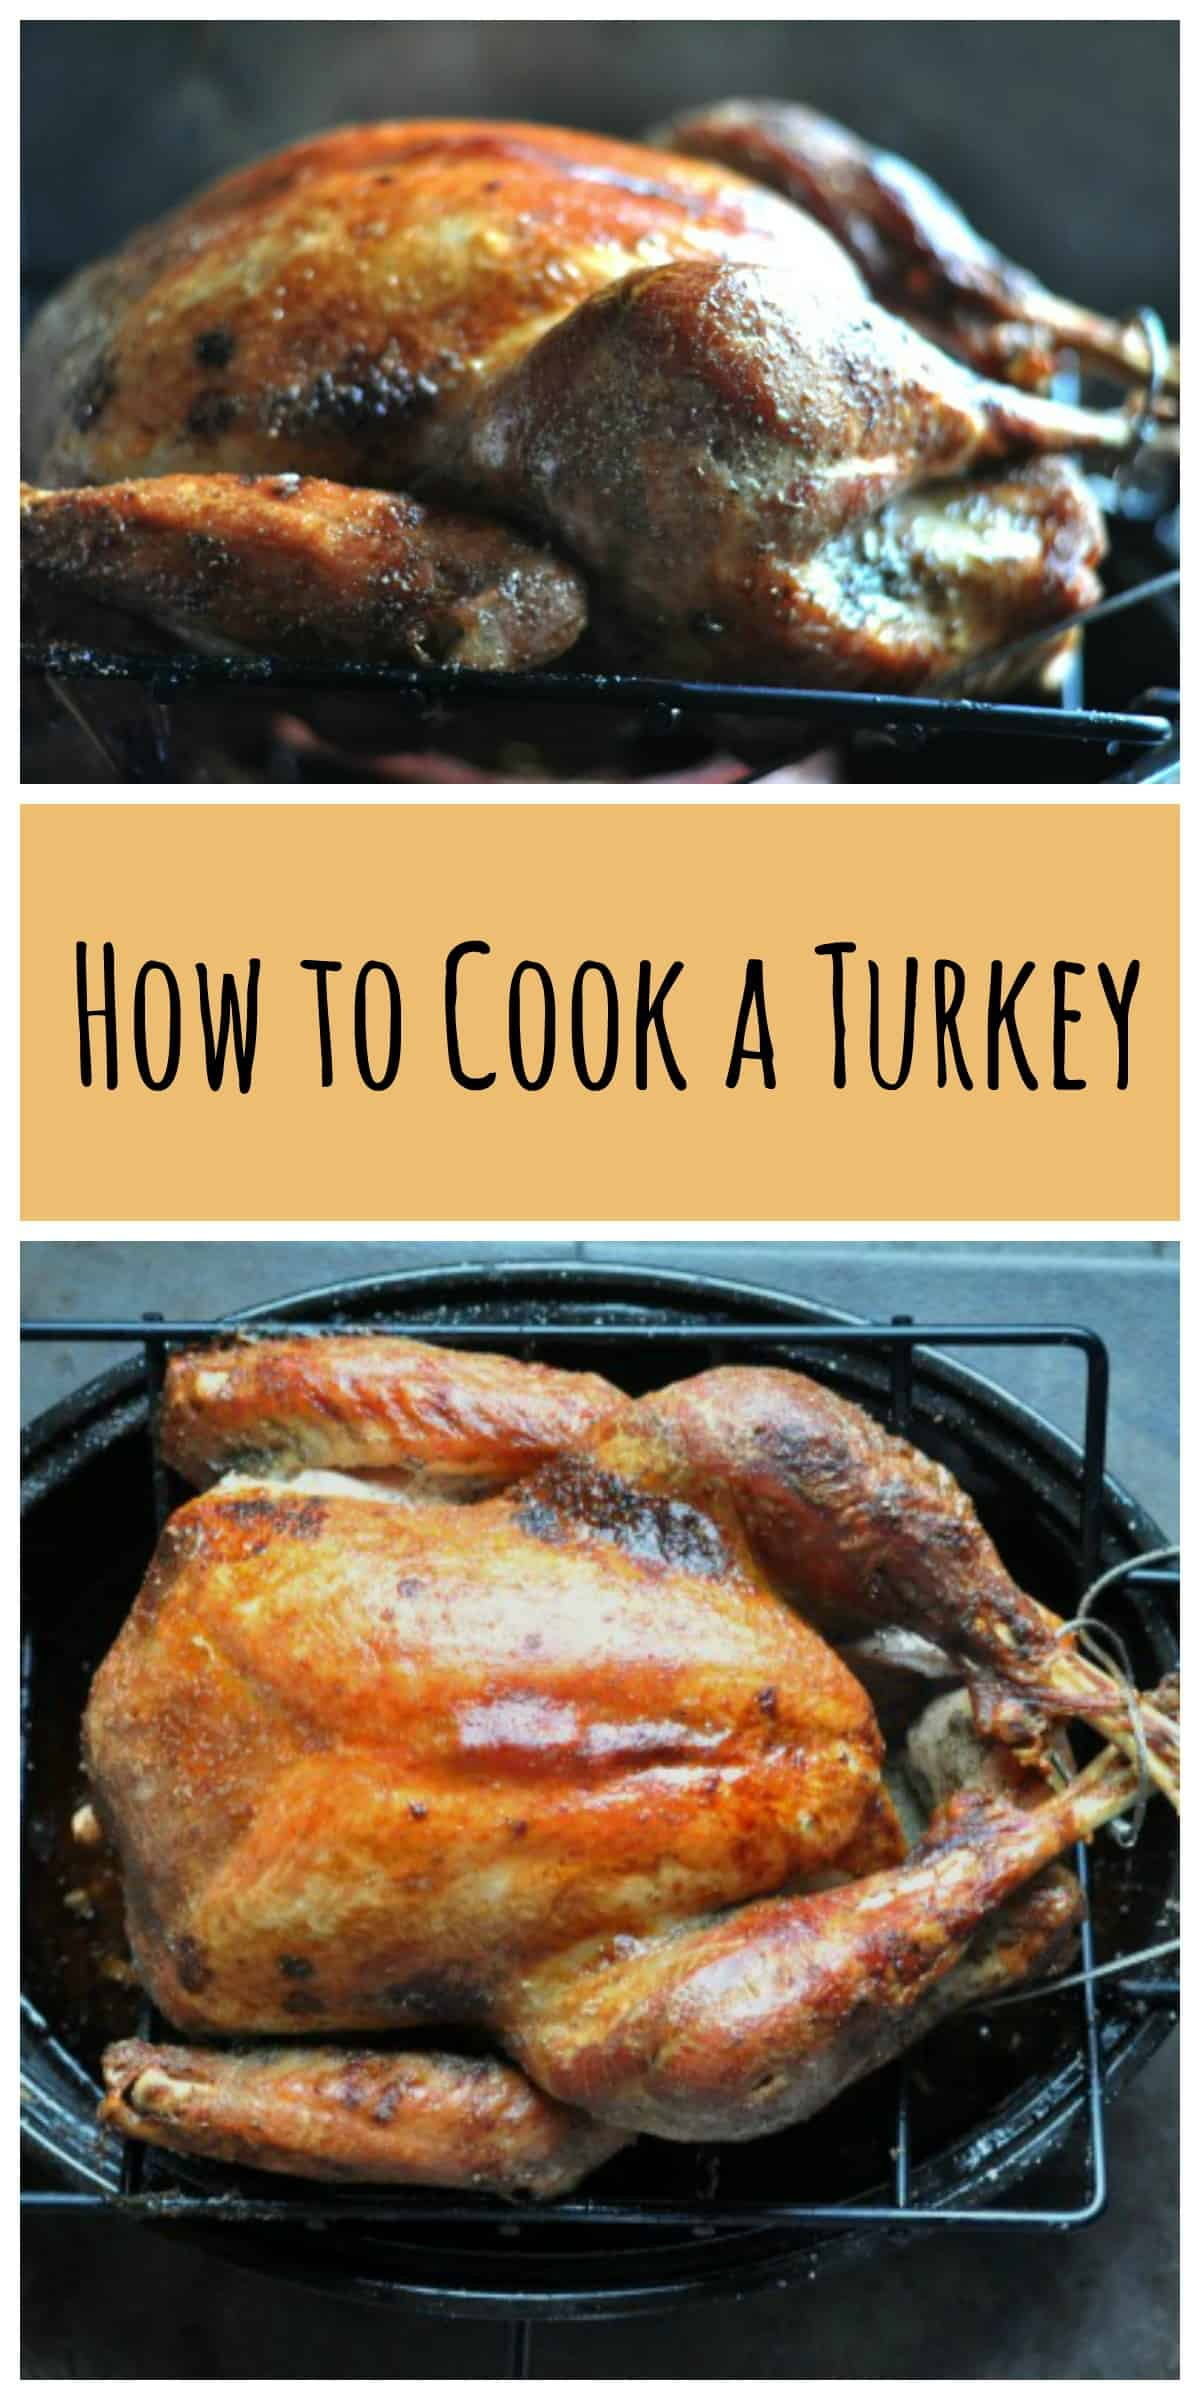 How to cook a turkey 51